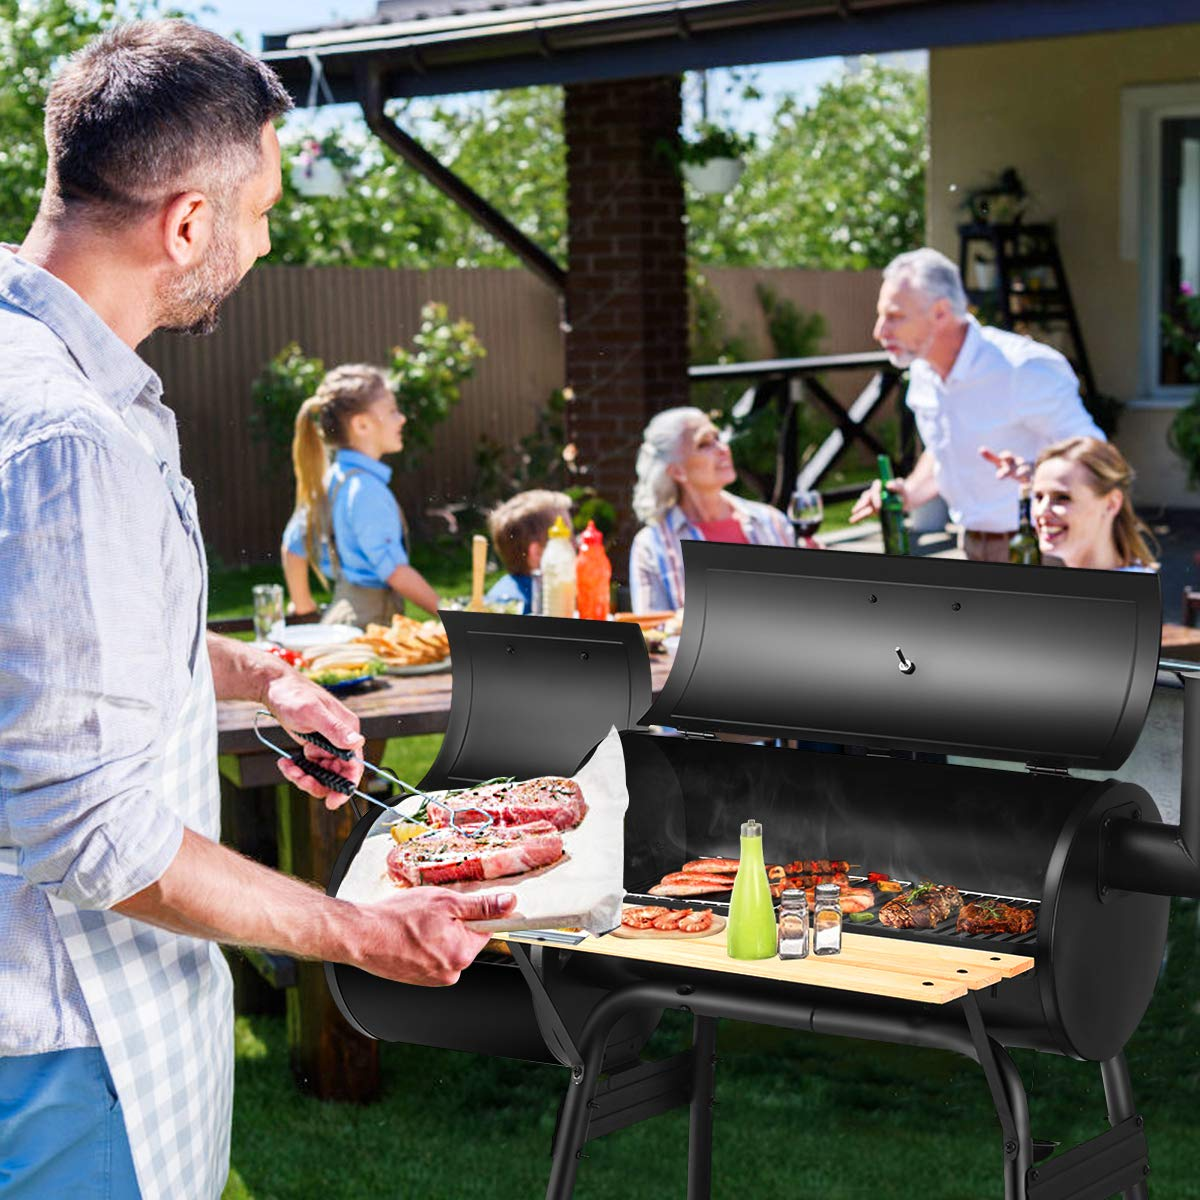 Giantex BBQ Grill Charcoal Barbecue Grill Outdoor Pit Patio Backyard Home Meat Cooker Smoker with Offset Smoker by Giantex (Image #3)